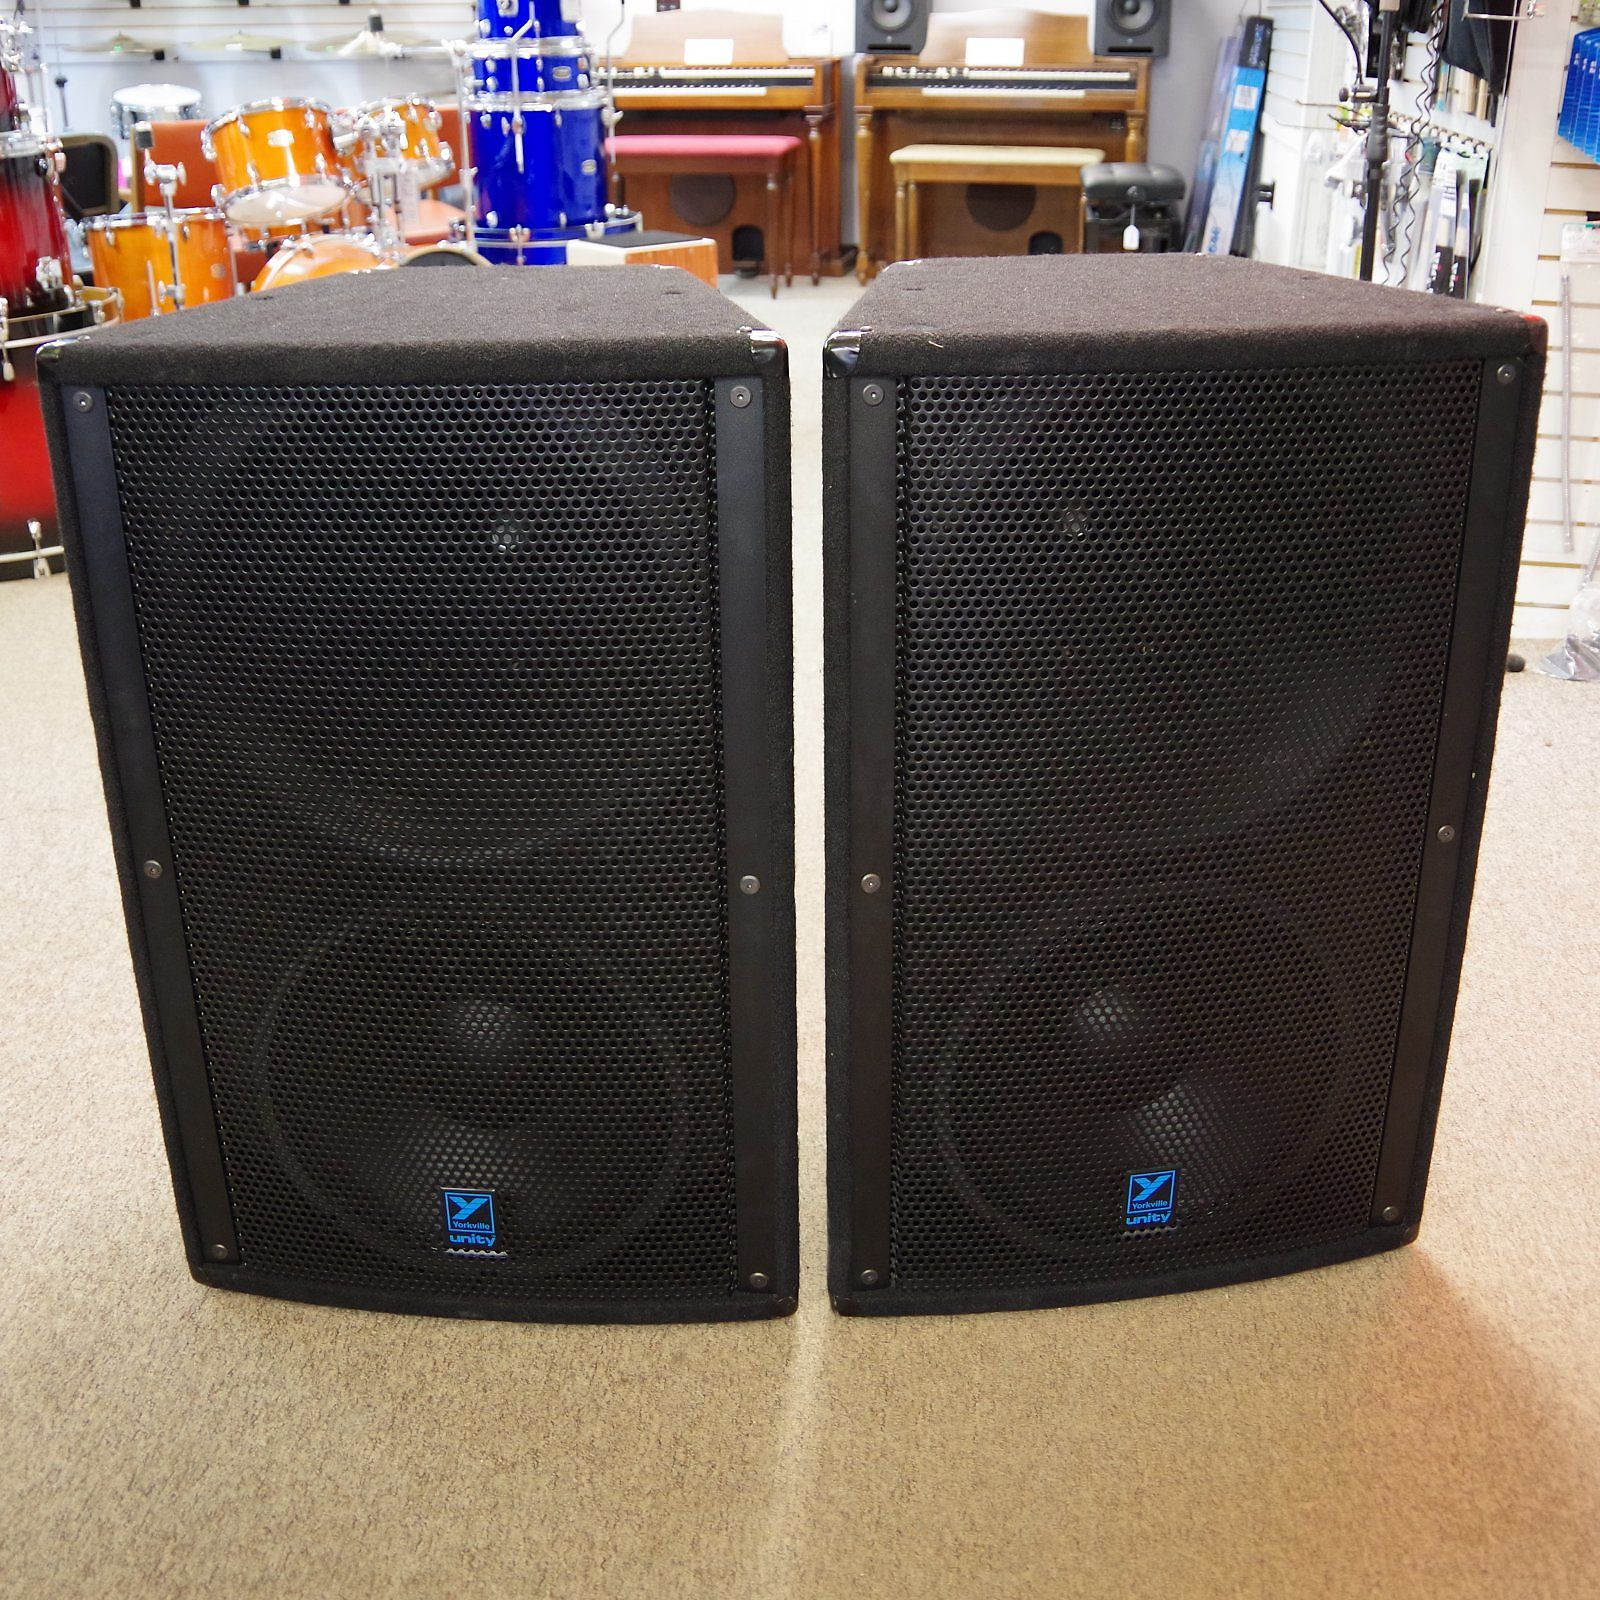 yorkville unity u15p 15 3 way 900w powered pa speakers with covers. Black Bedroom Furniture Sets. Home Design Ideas